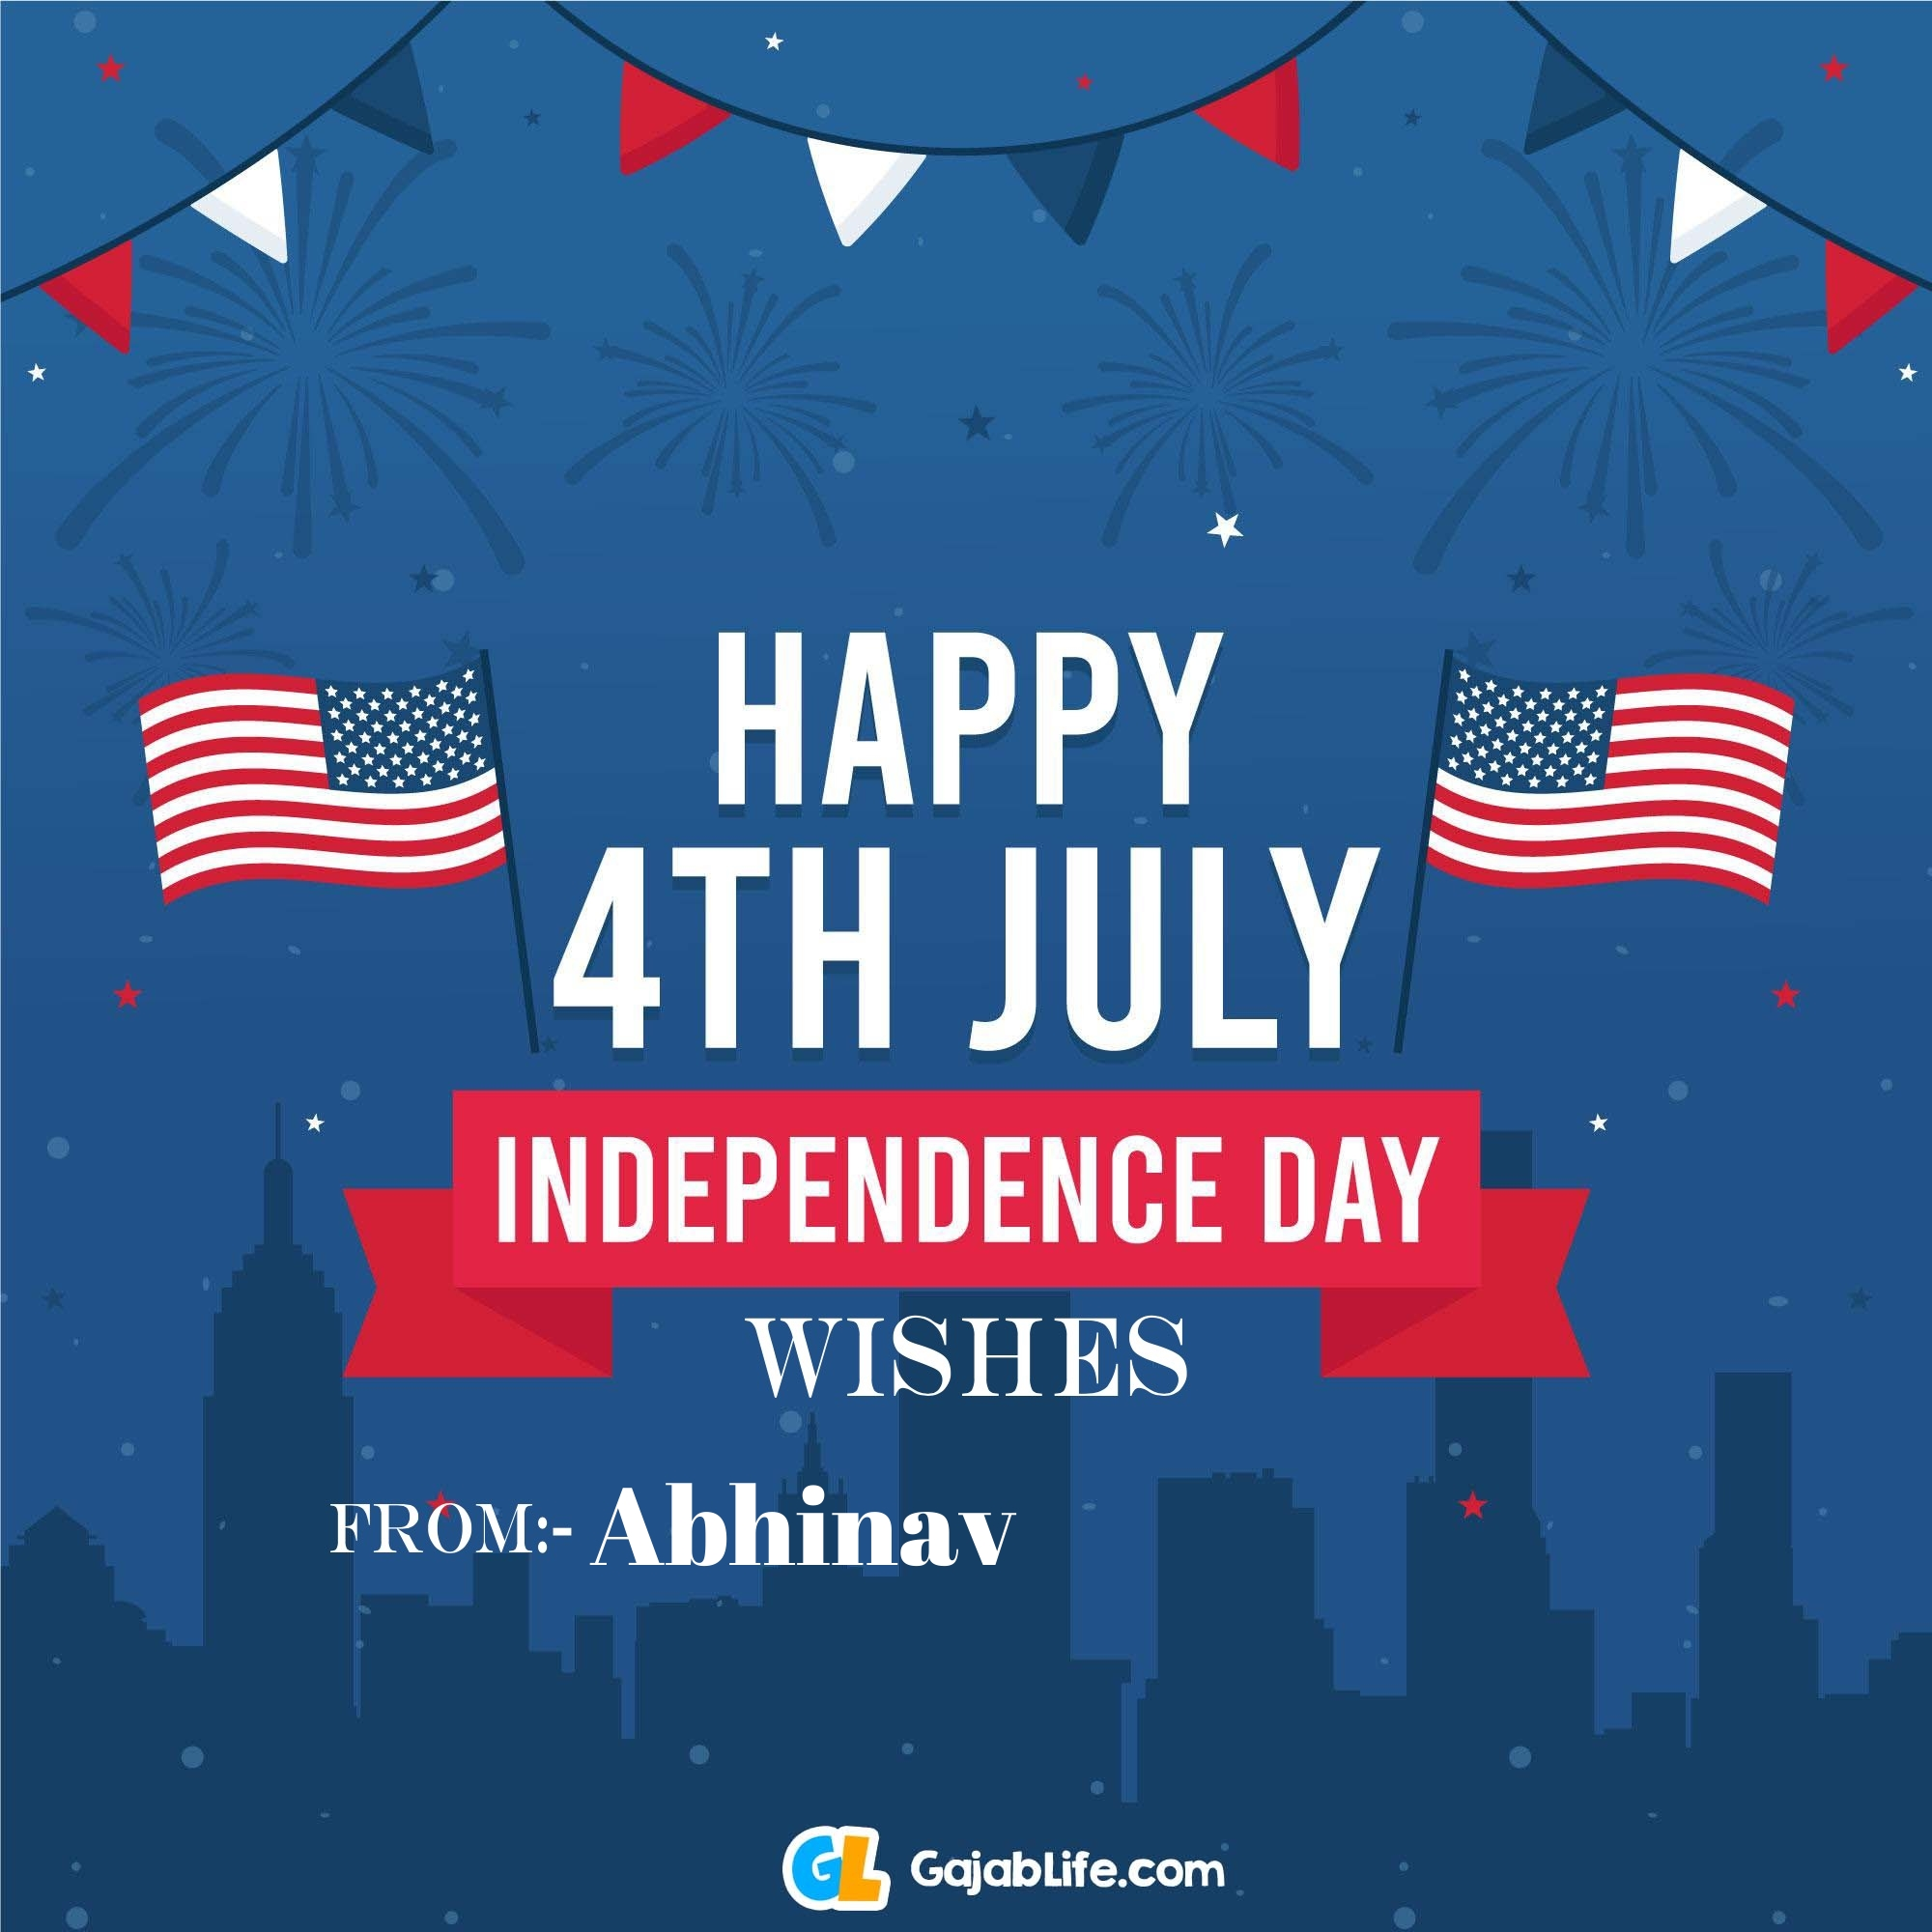 Abhinav happy independence day united states of america images